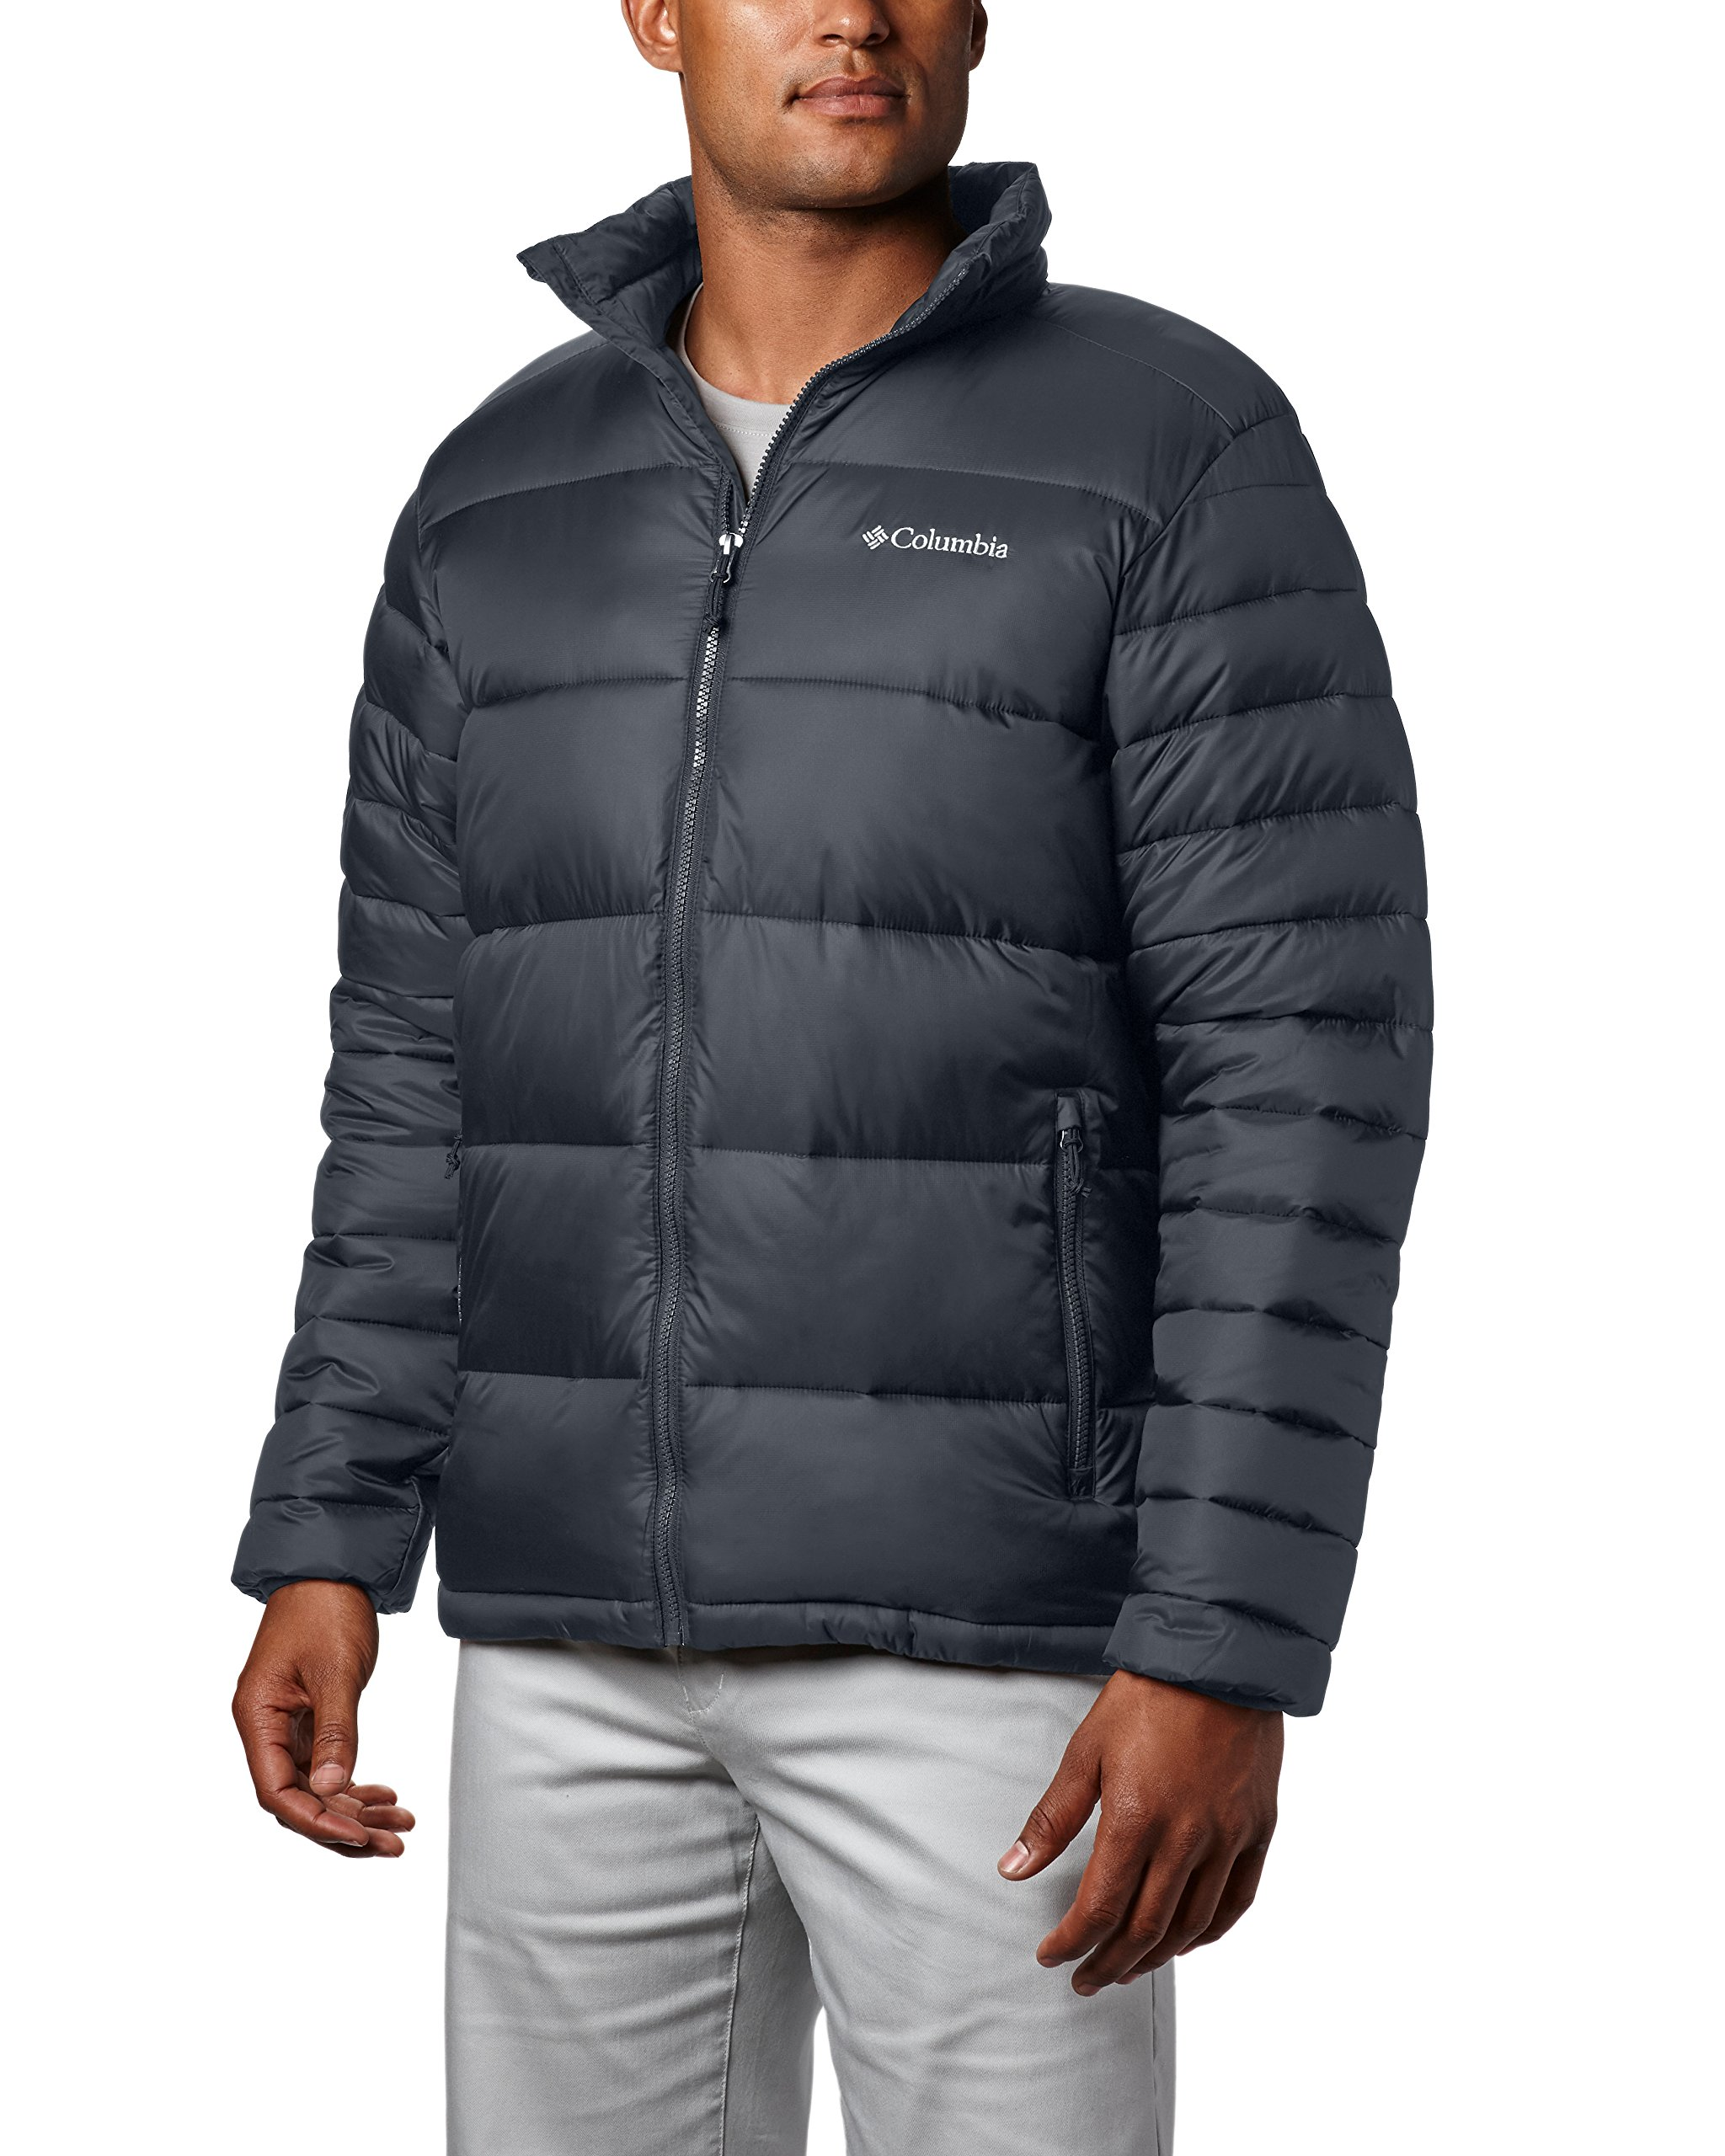 Columbia Men's Frost Fighter Insulated Warm Puffer Jacket, graphite, L by Columbia